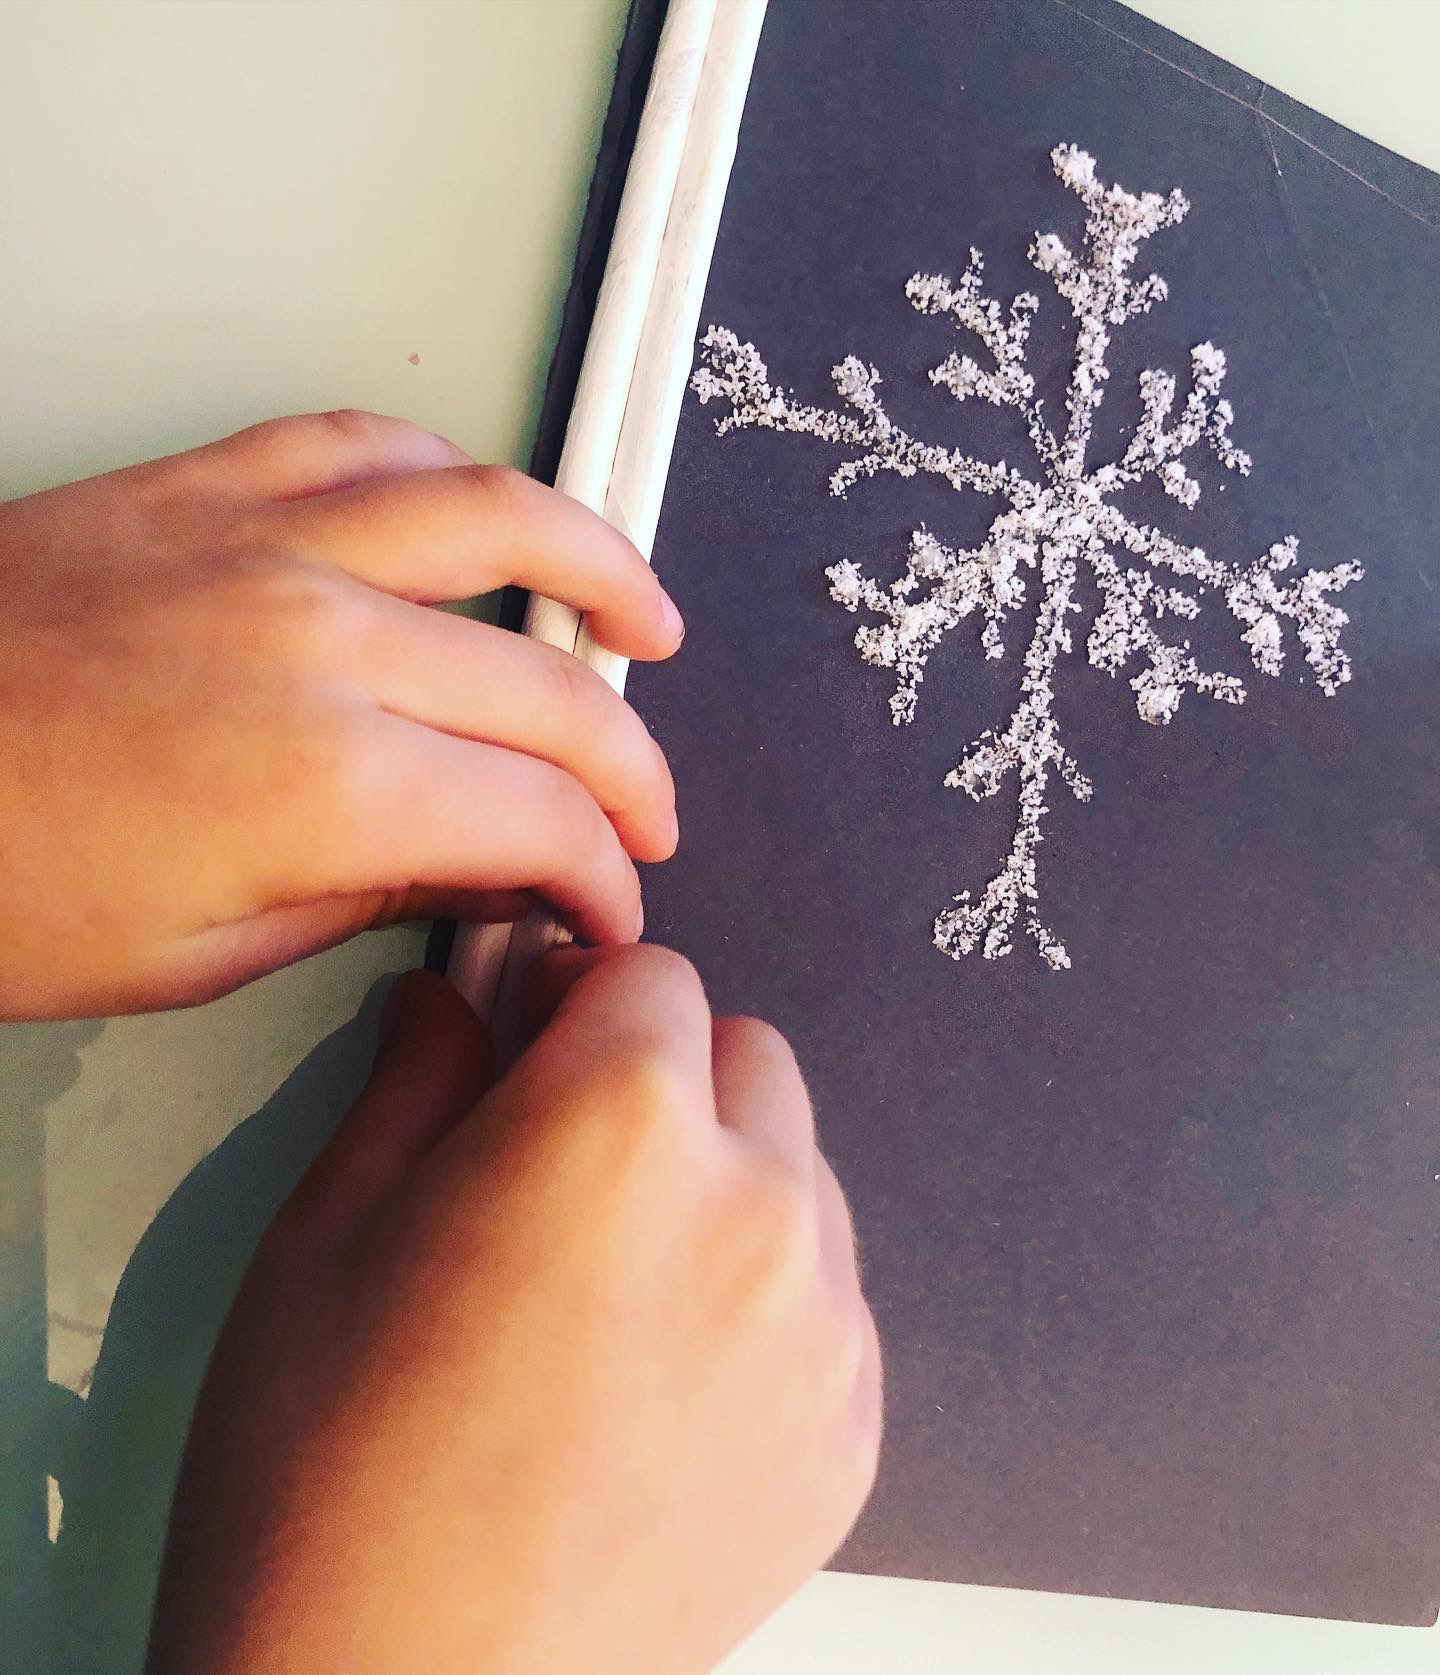 making a frame for the snowflake pictures